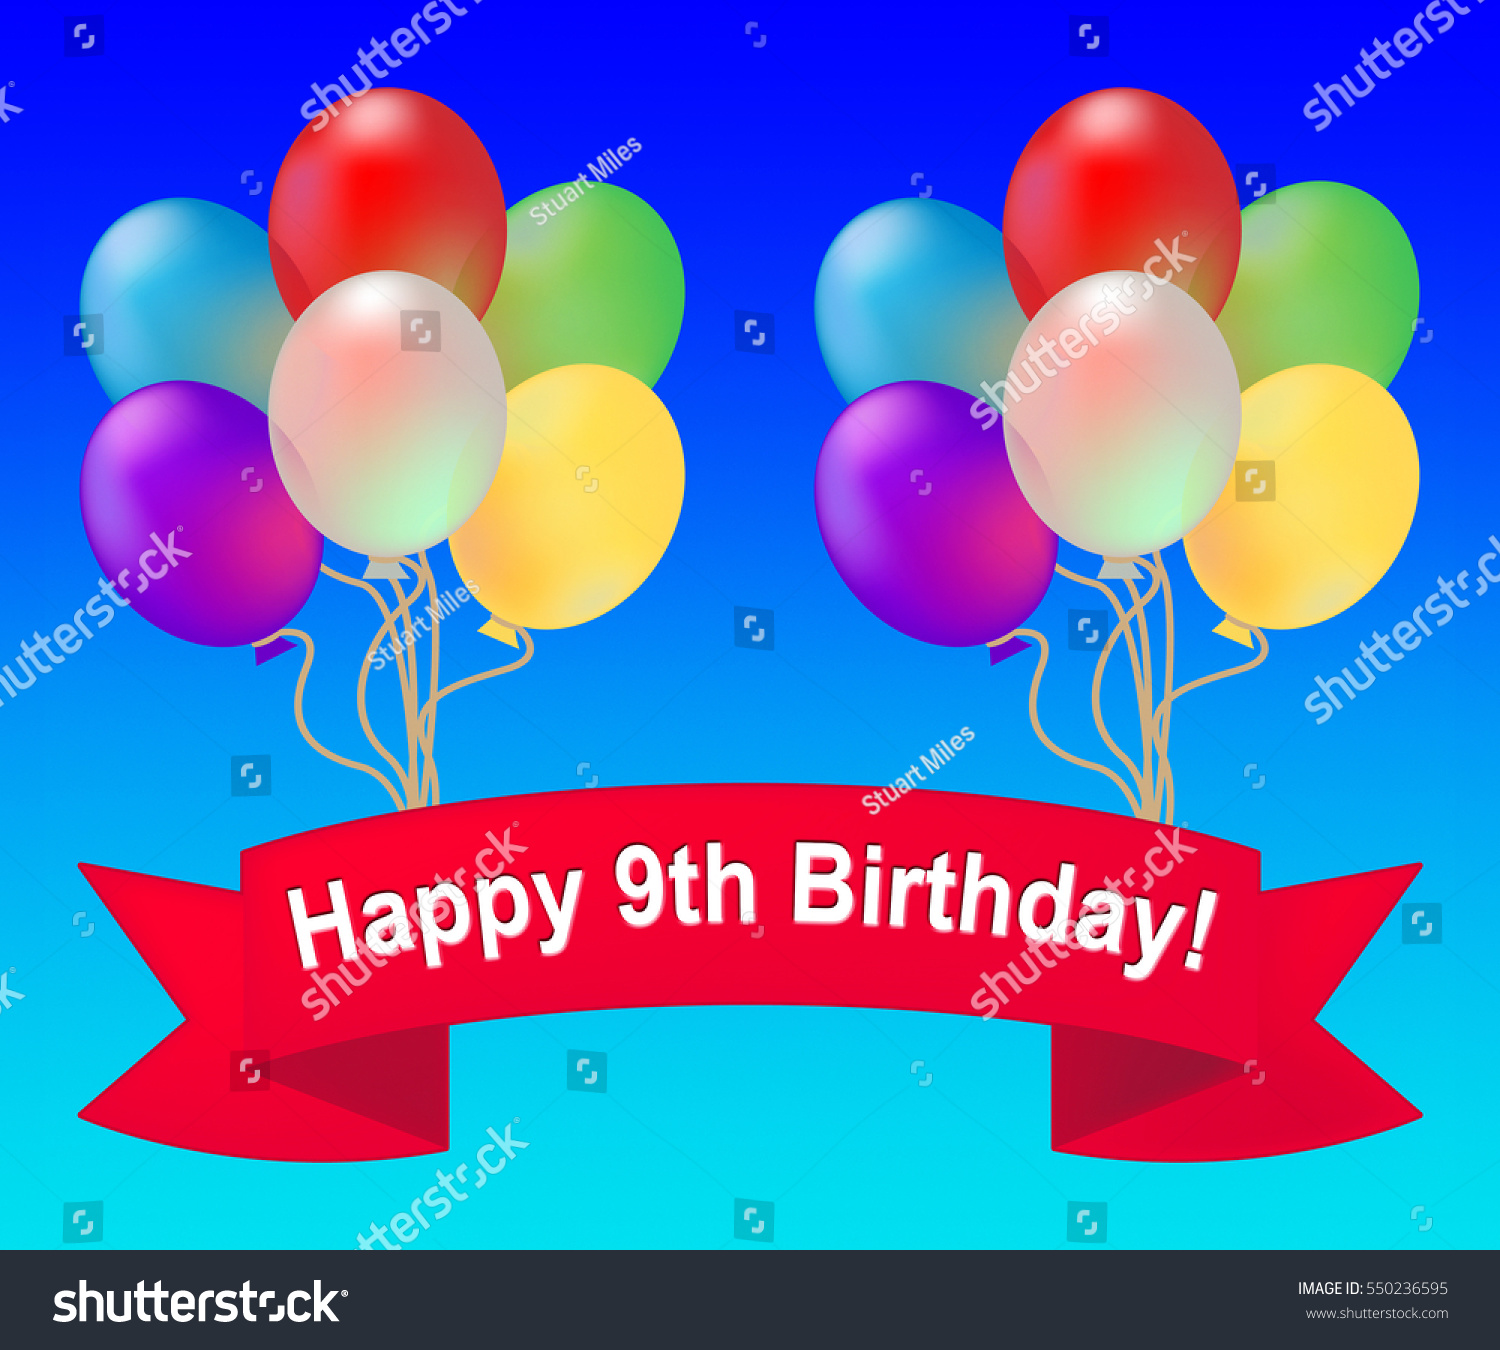 Happy Ninth Birthday Balloons Means 9th Stock Illustration 550236595 ...